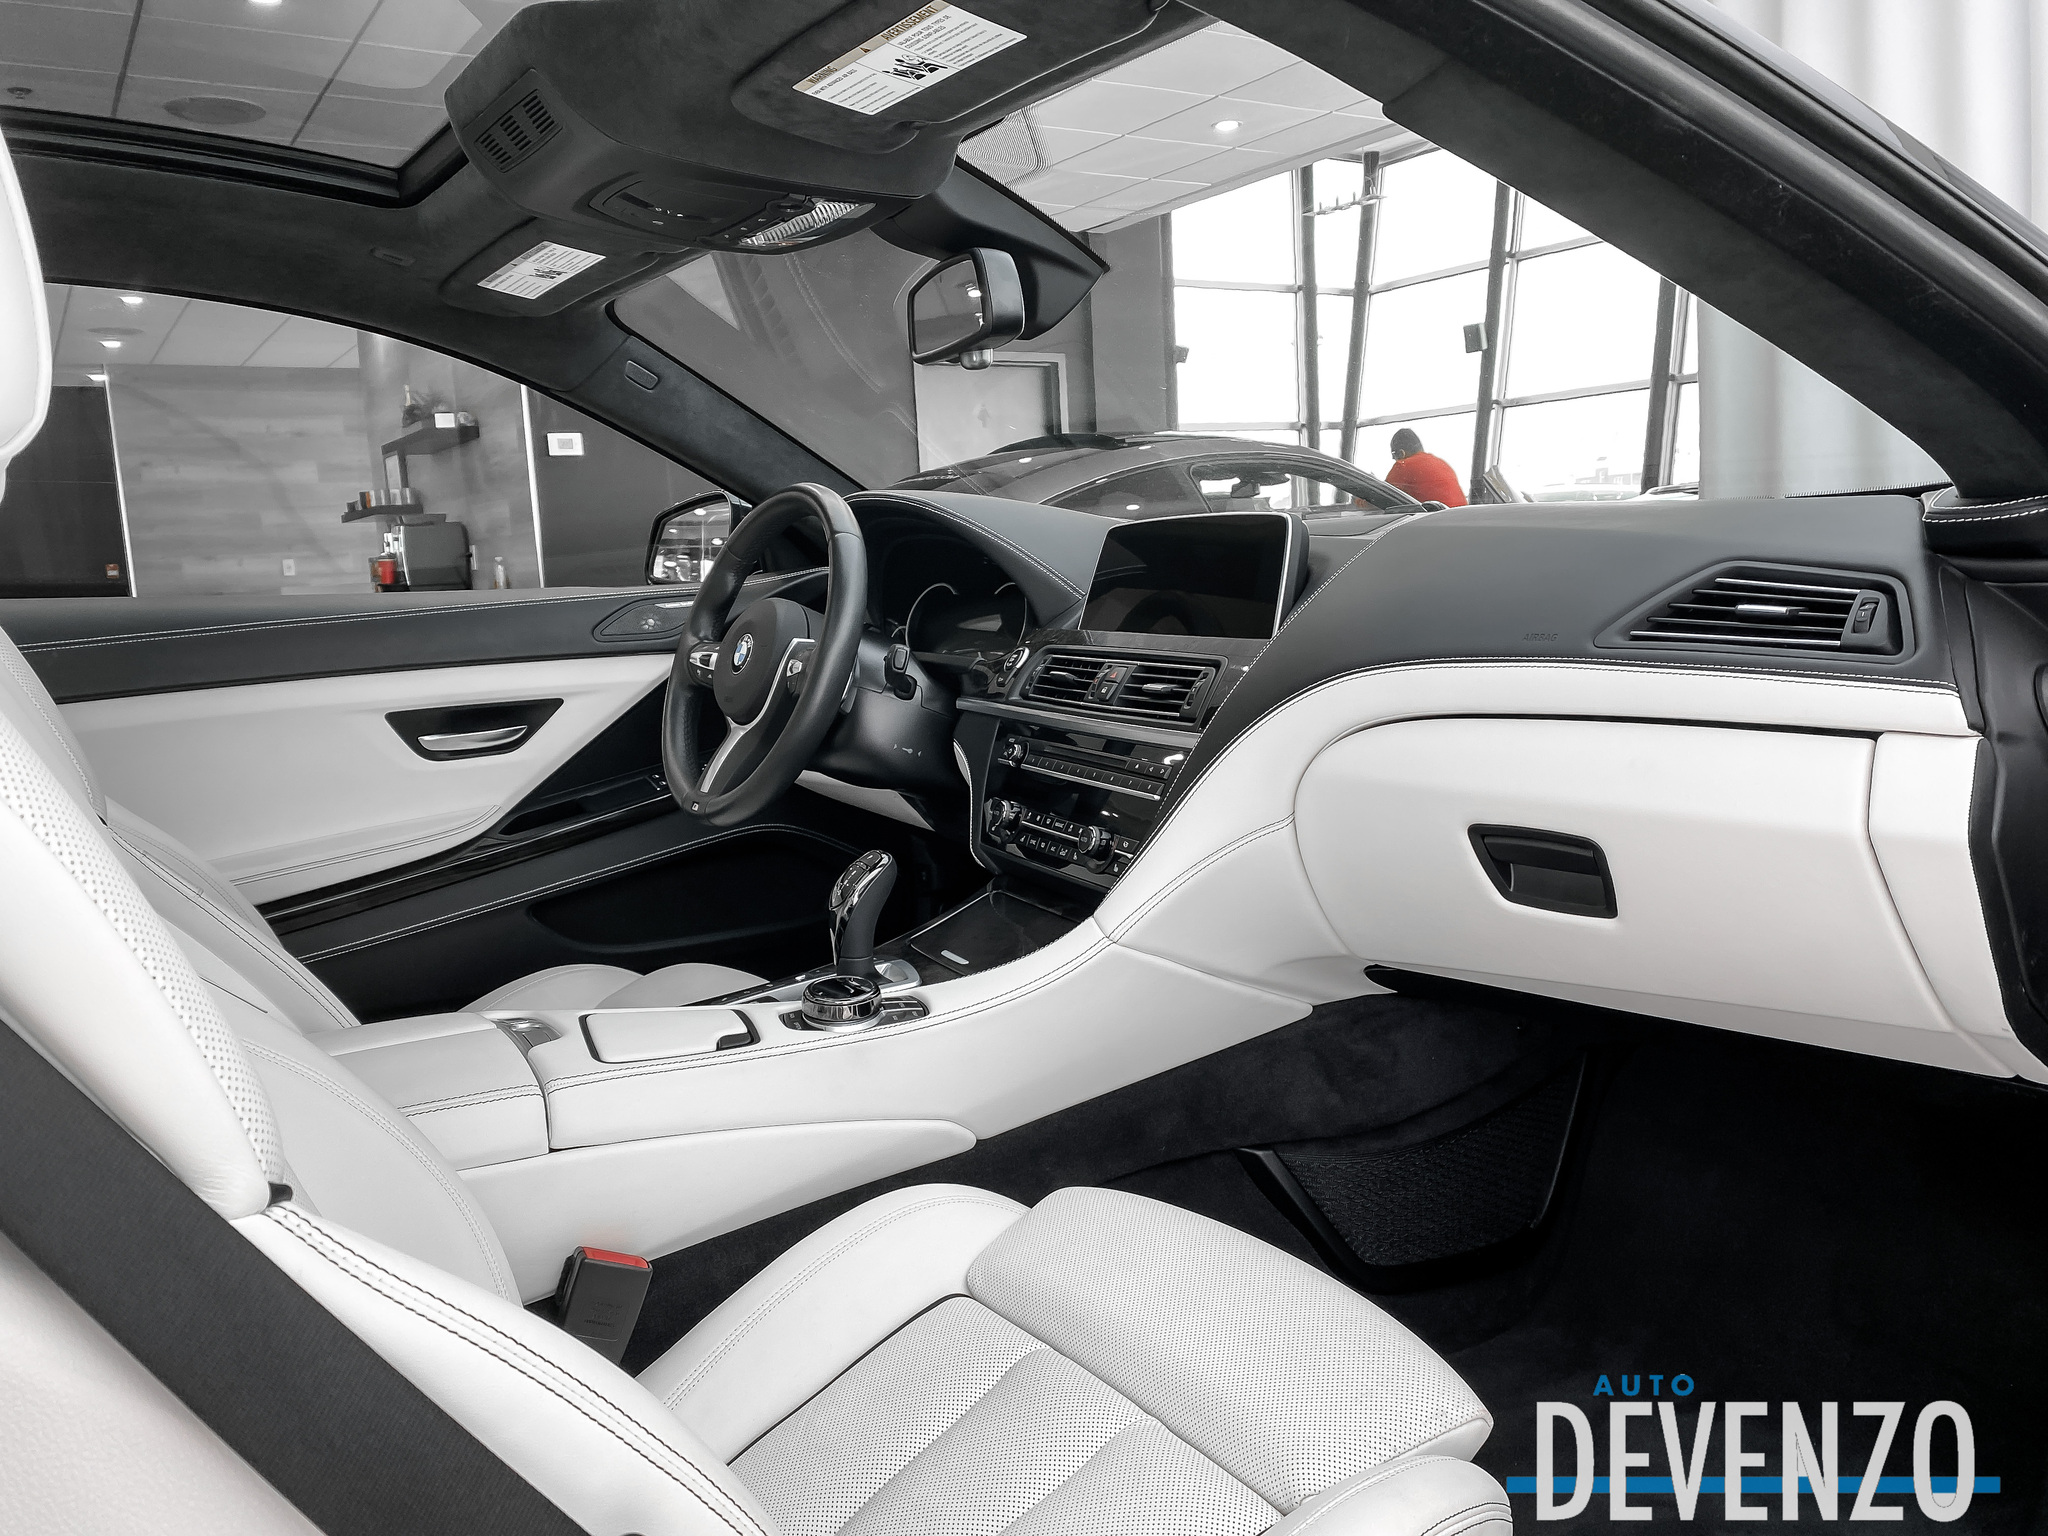 2018 BMW 6 Series 650i xDrive Coupe M Sport Plus 445HP Waranty 04/23 complet